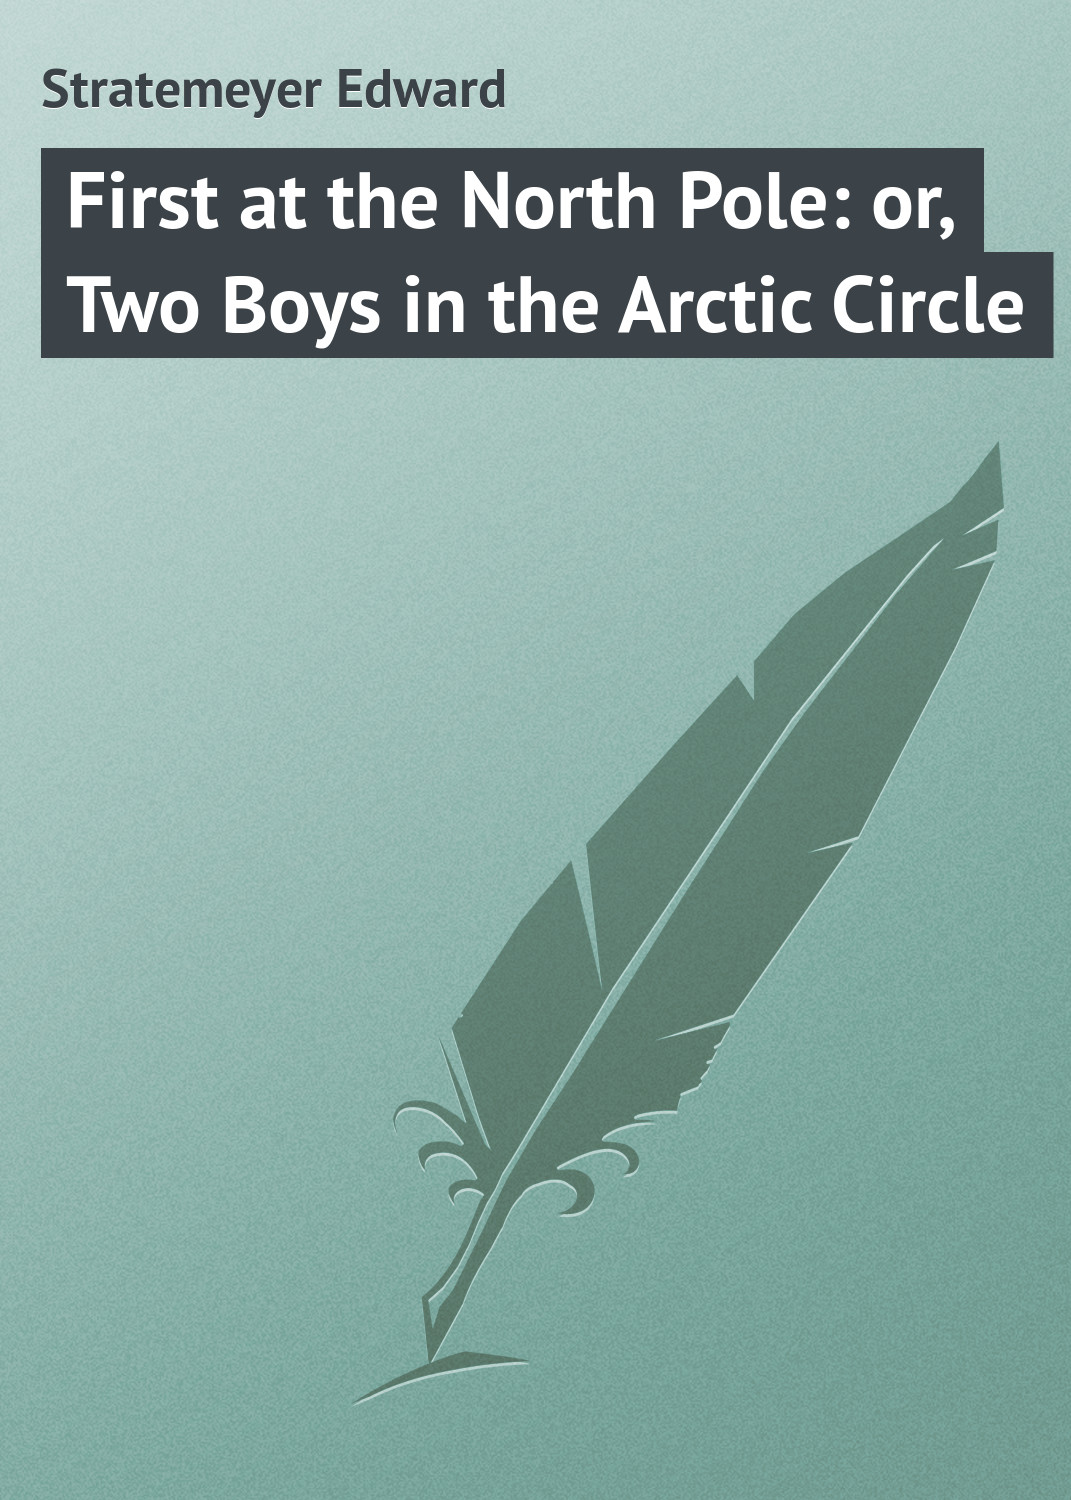 Stratemeyer Edward First at the North Pole: or, Two Boys in the Arctic Circle